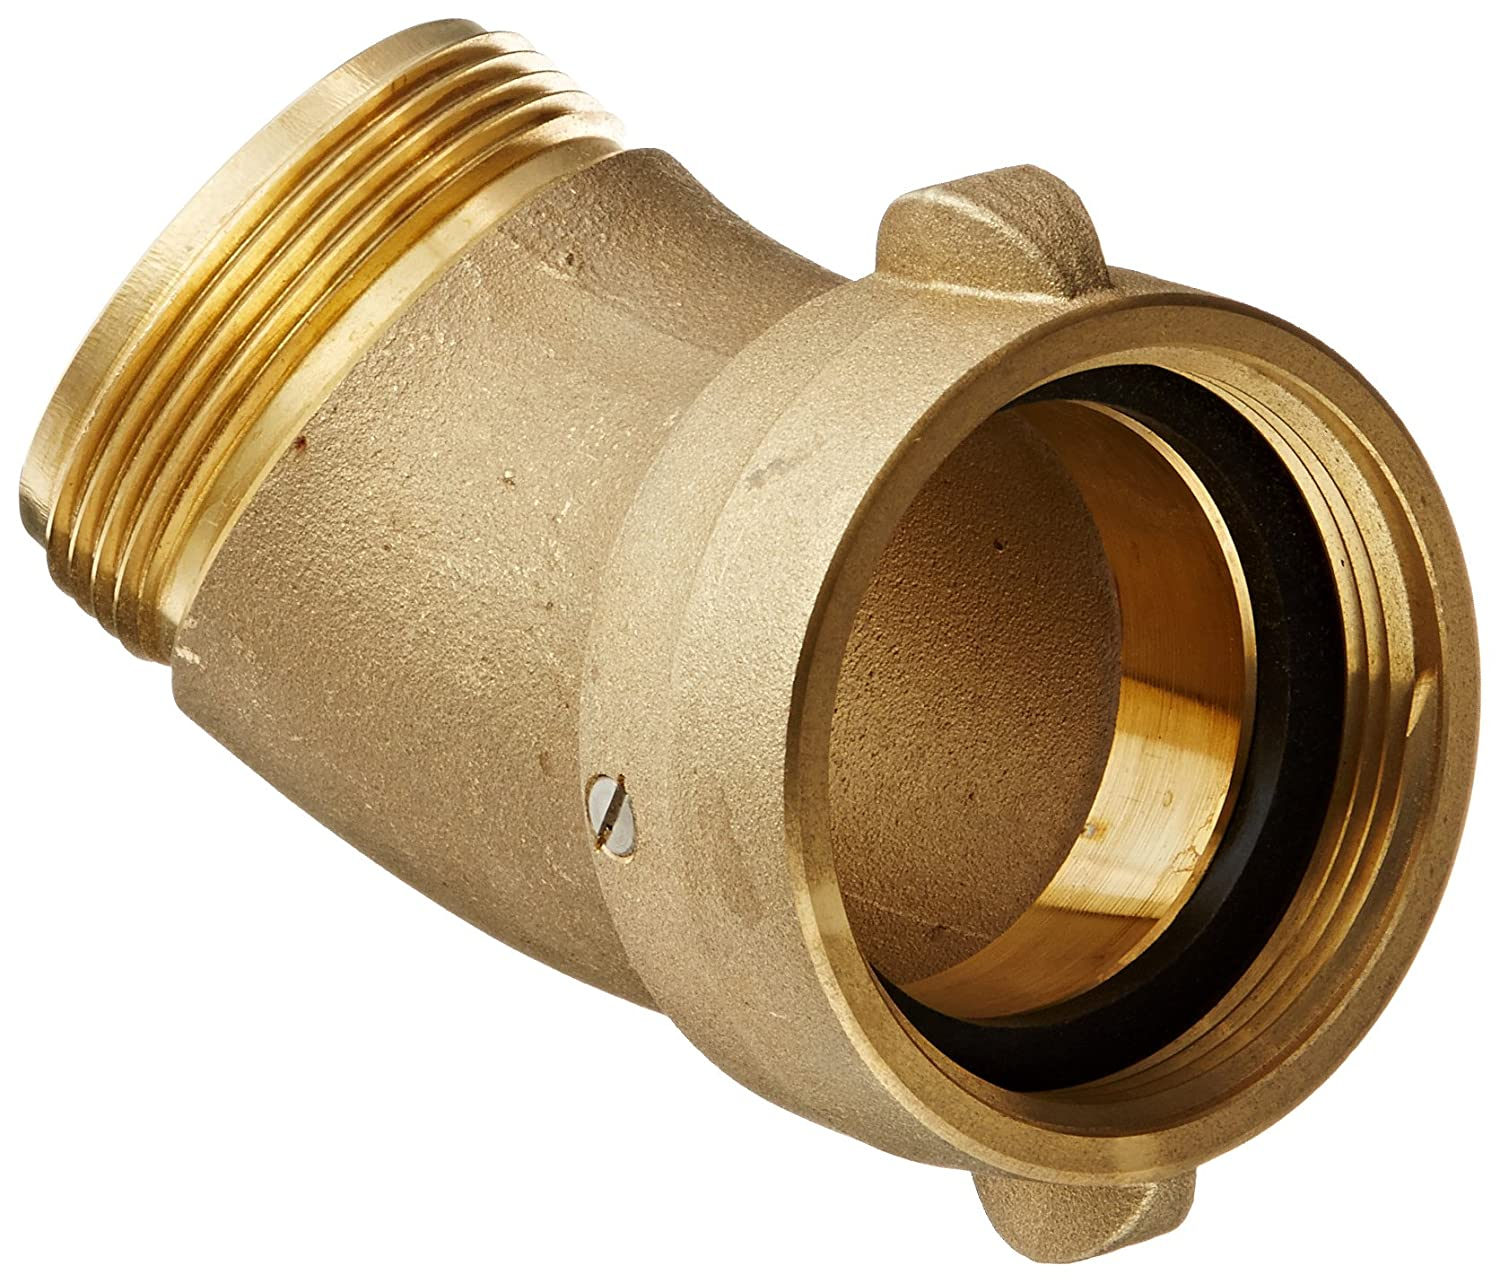 Male NH NH Dixon Valve HA4525F Brass Fire Equipment 4-1//2 NST Female x 2-1//2 NST Hydrant Adapter with Pin Lug